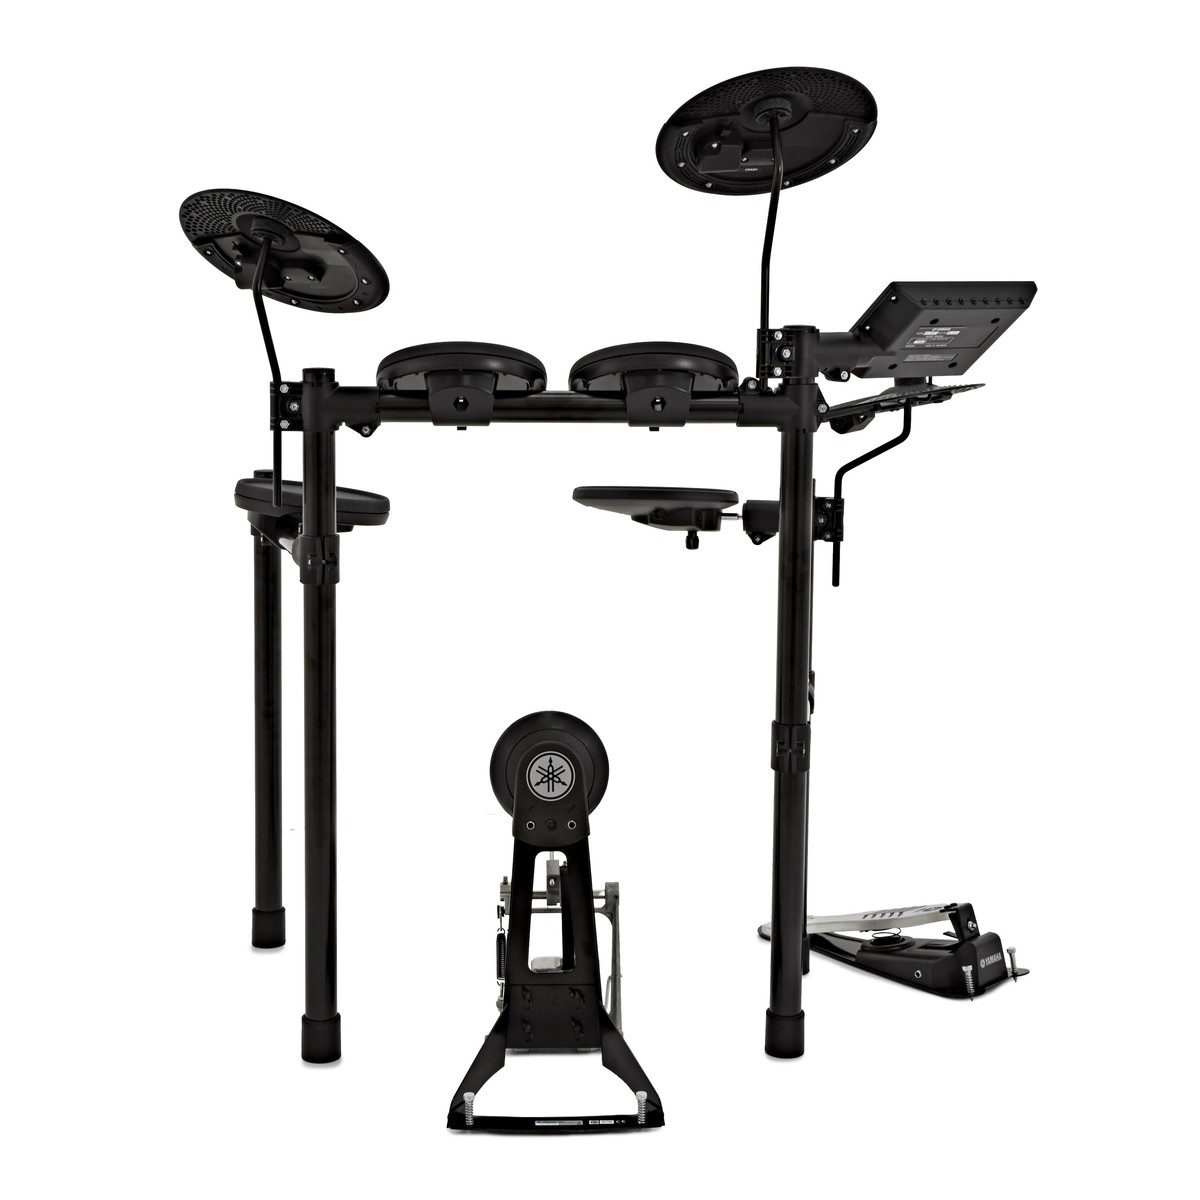 Yamaha Dtx452 Electronic Drum Kit At Gear4music